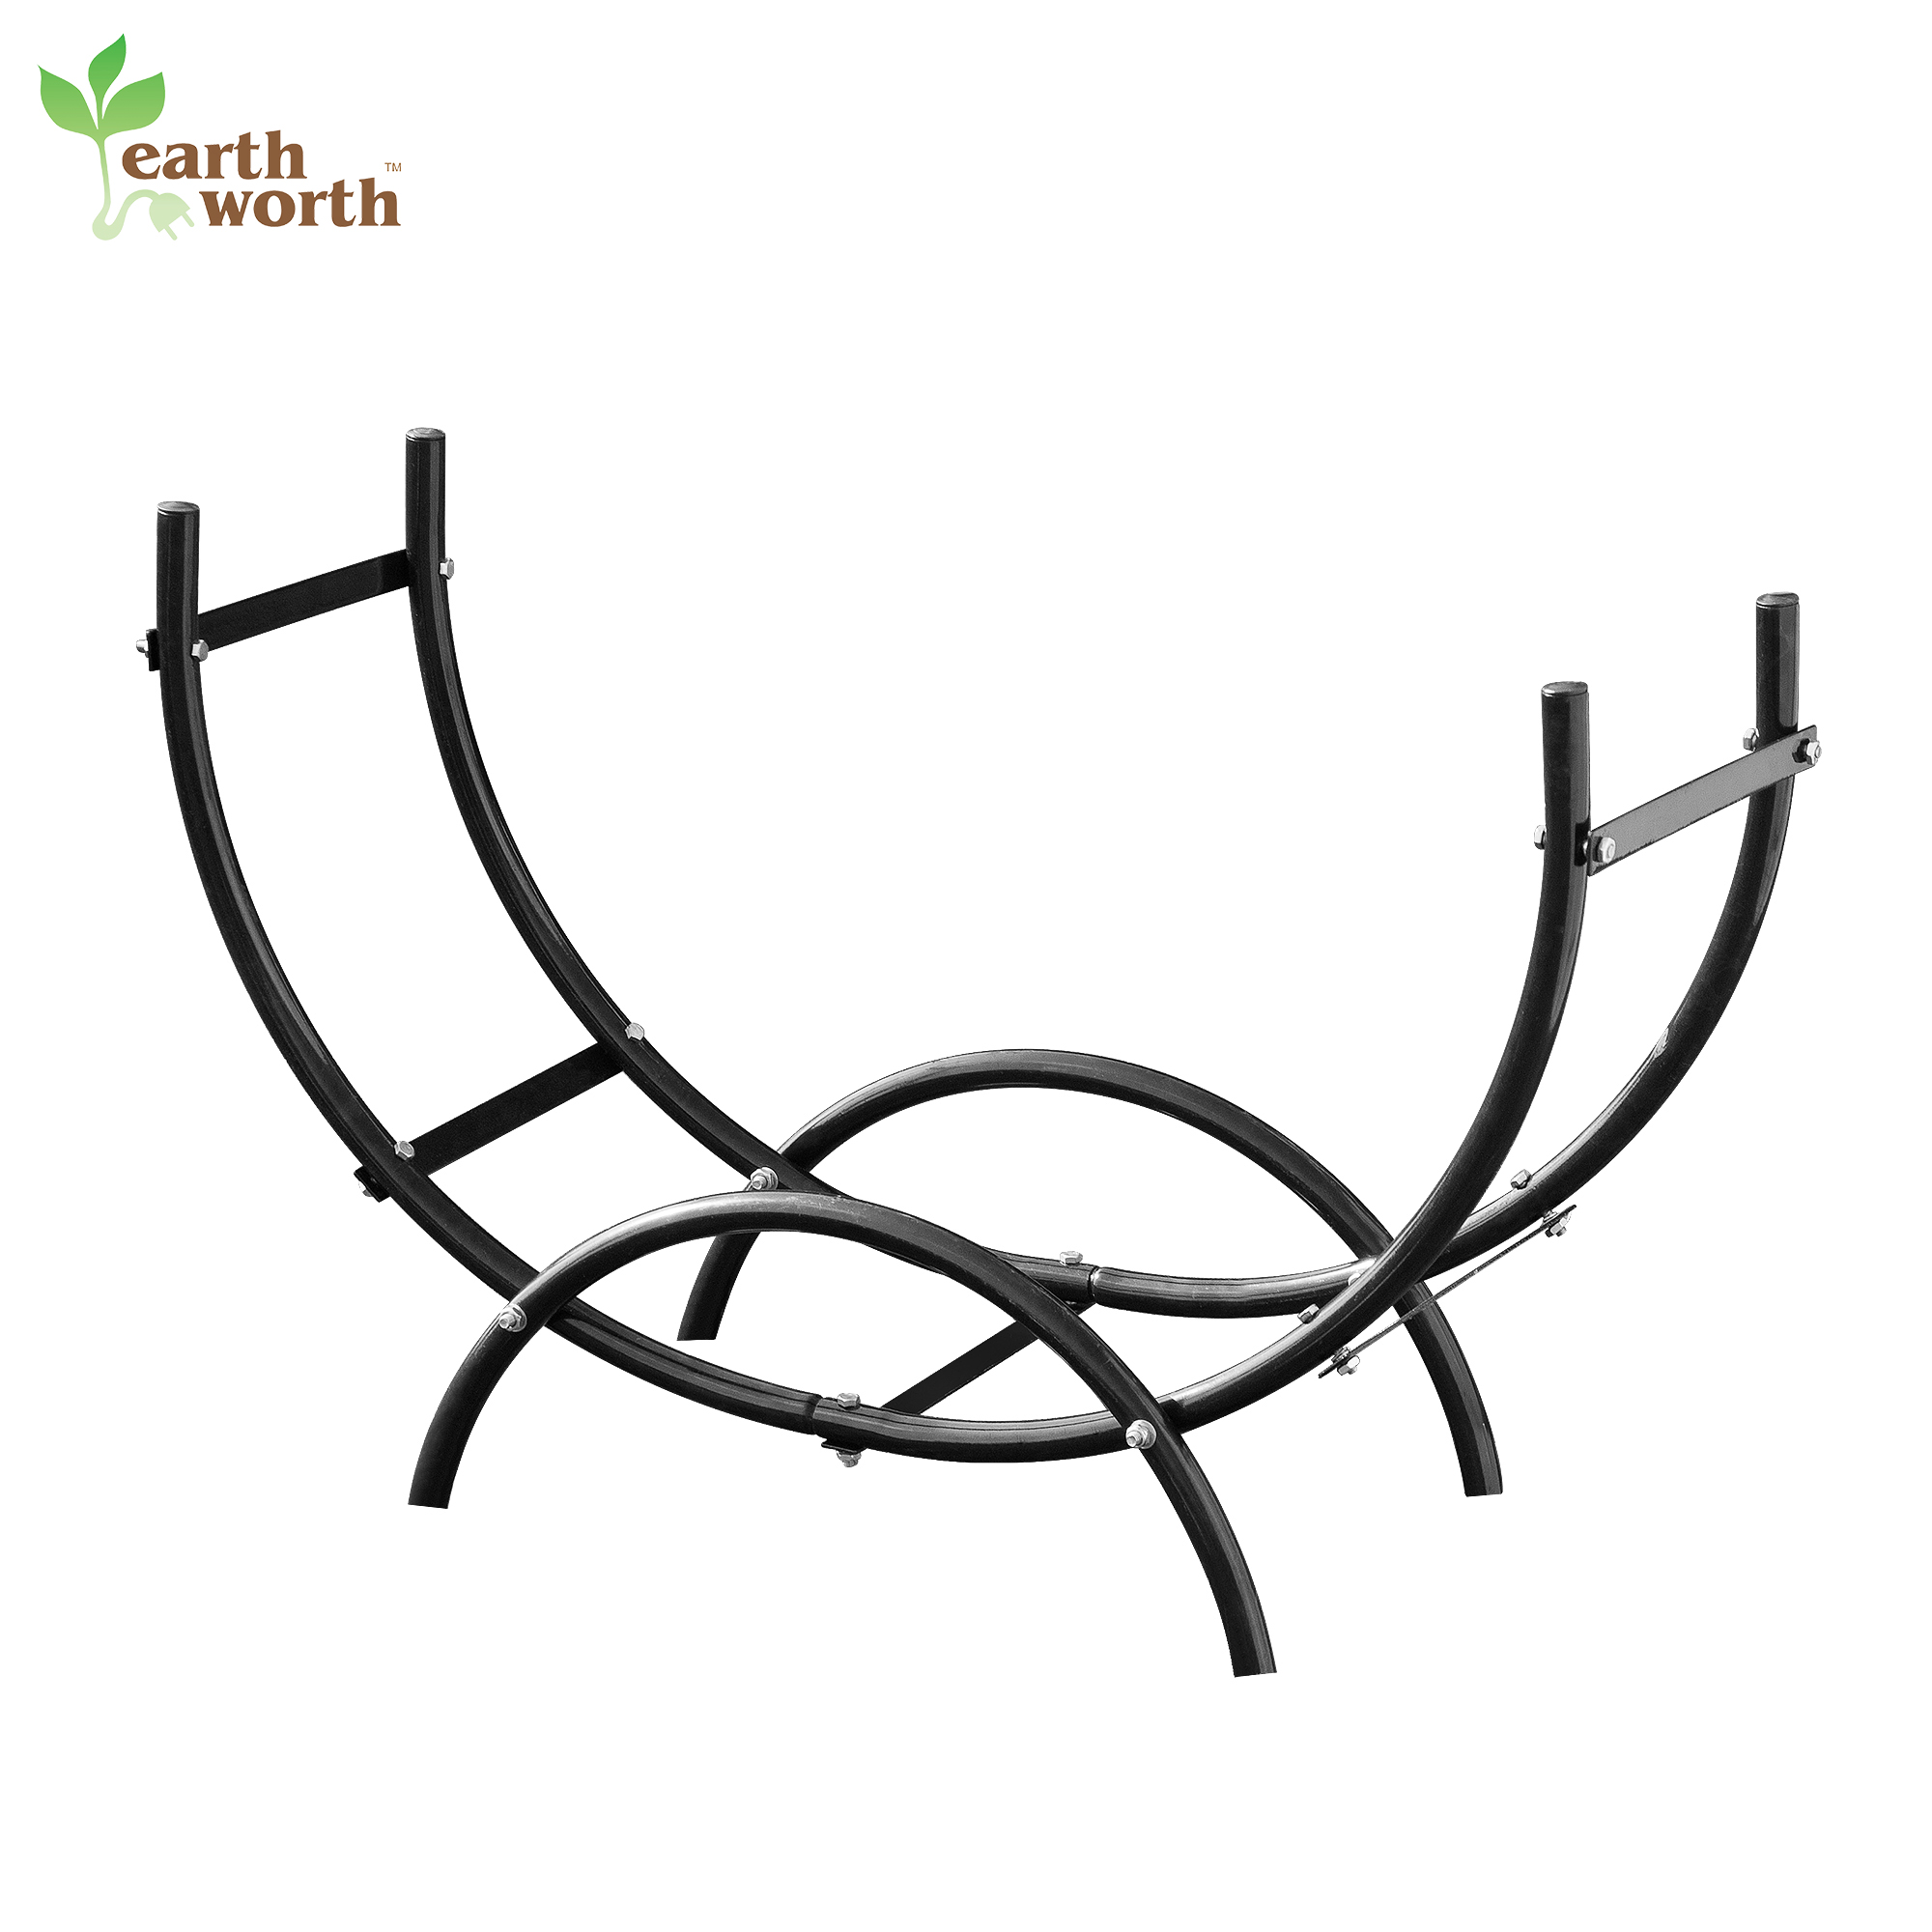 Earth Worth | Firewood Curved Log Rack | 3 FT | Black